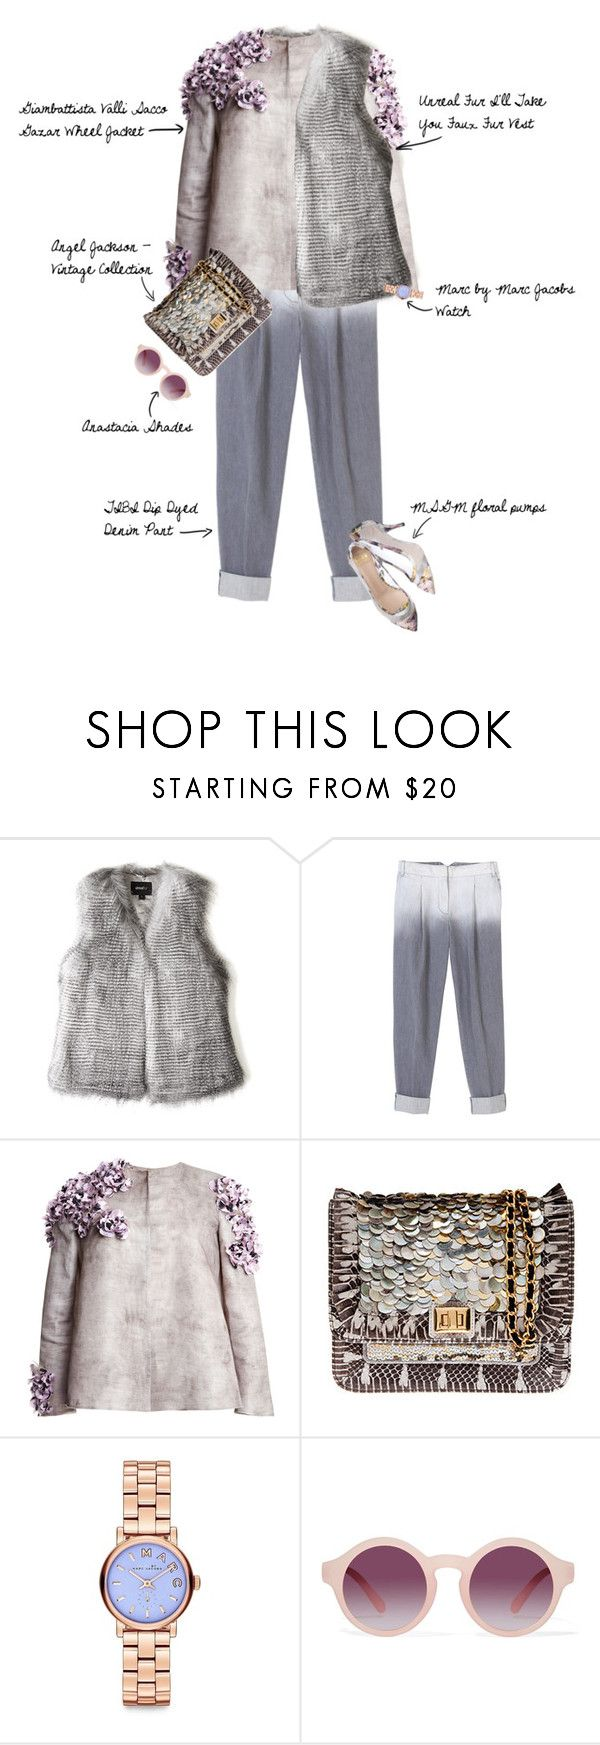 """""""collezione invernale"""" by fashionscribbles ❤ liked on Polyvore featuring Unreal Fur, TIBI, Giambattista Valli, Angel Jackson, Marc by Marc Jacobs, highfashion, Collezione and INVERNALE"""